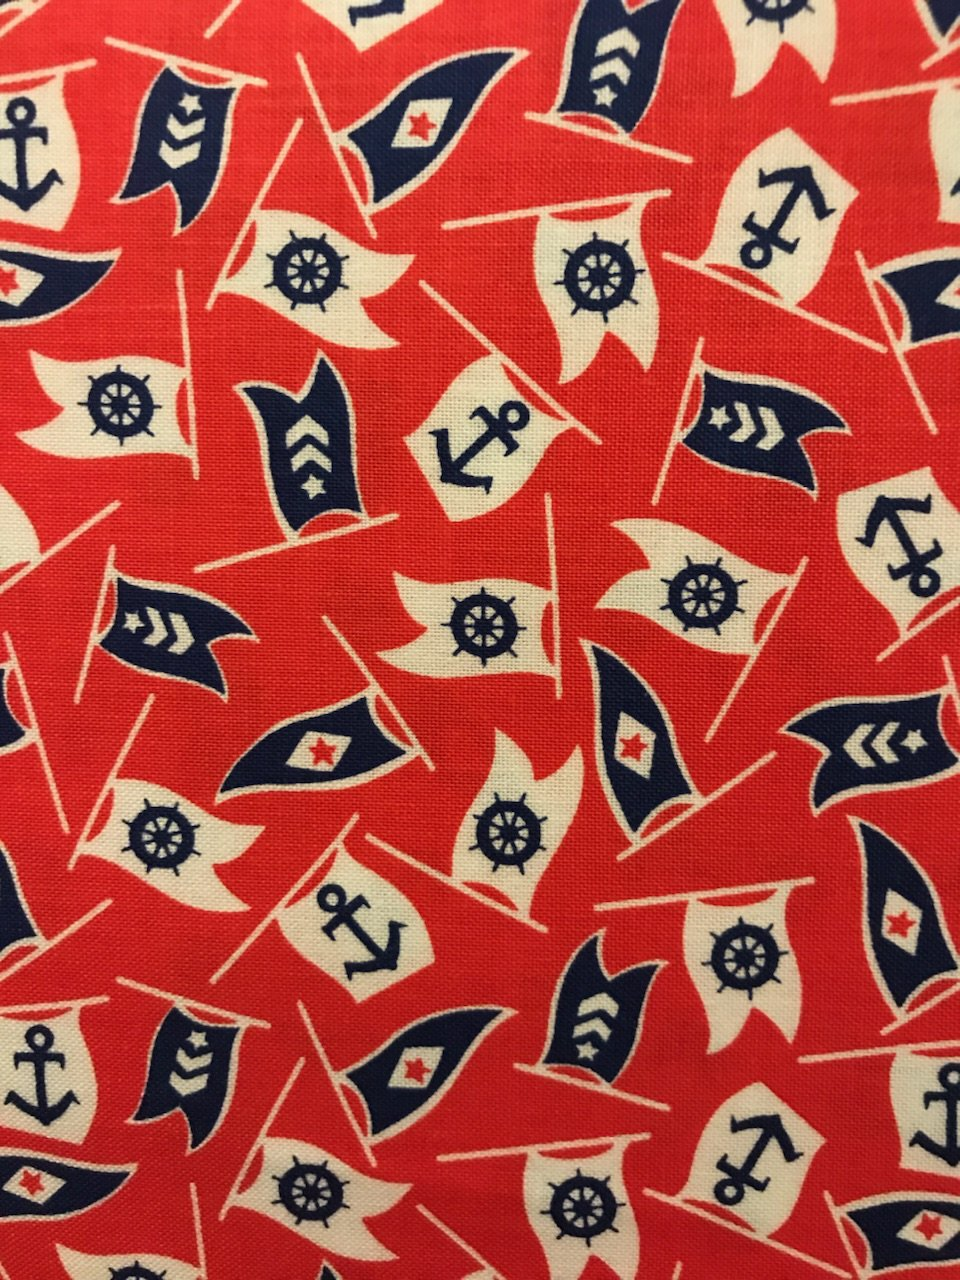 Bon Boyage 42864-3 Nautical Flags Red